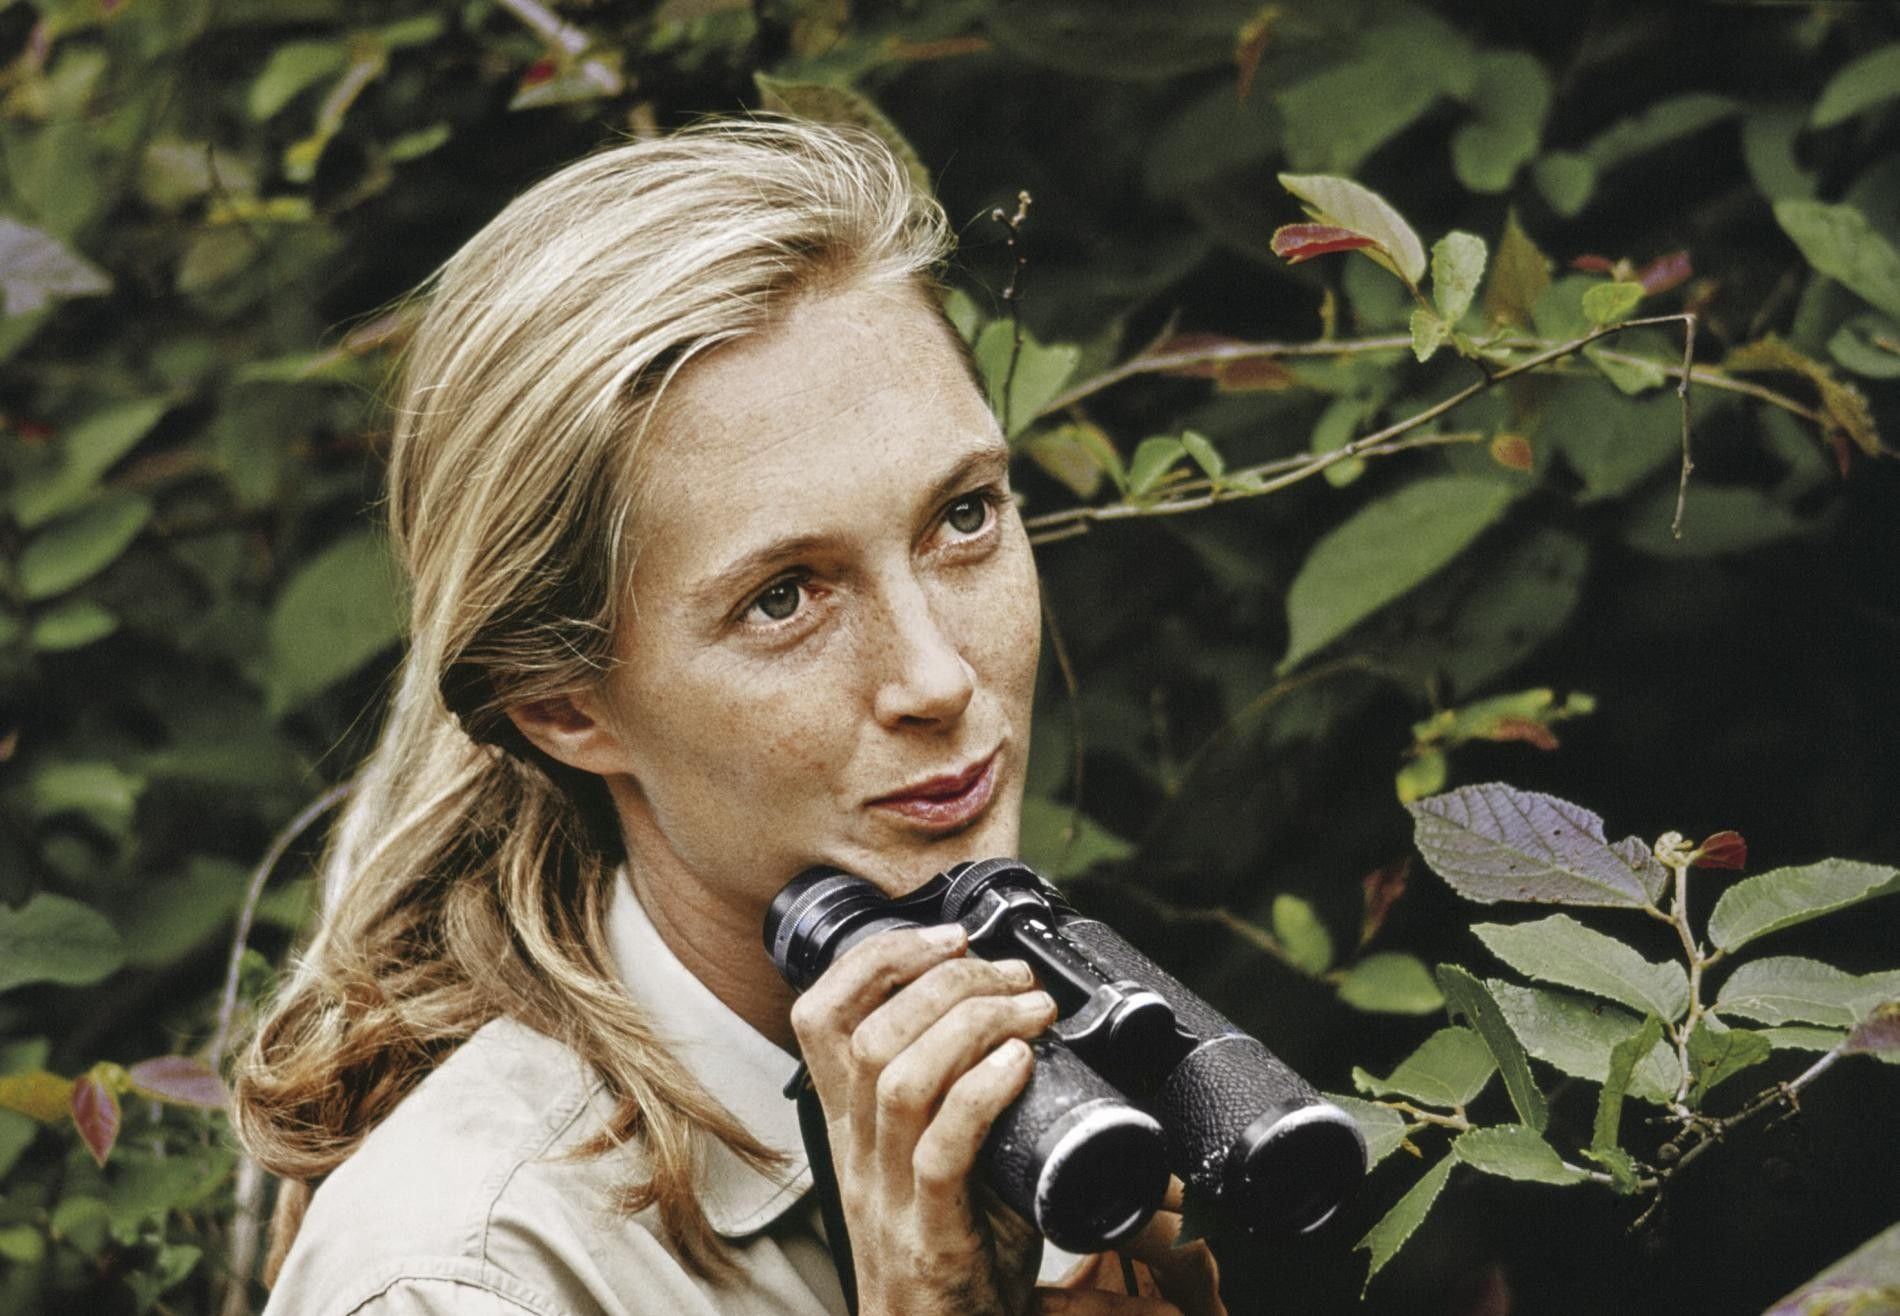 Jane Goodall in Miss Goodall and the Wild Chimpanzees (1965), de allereerste documentaire van de National ...